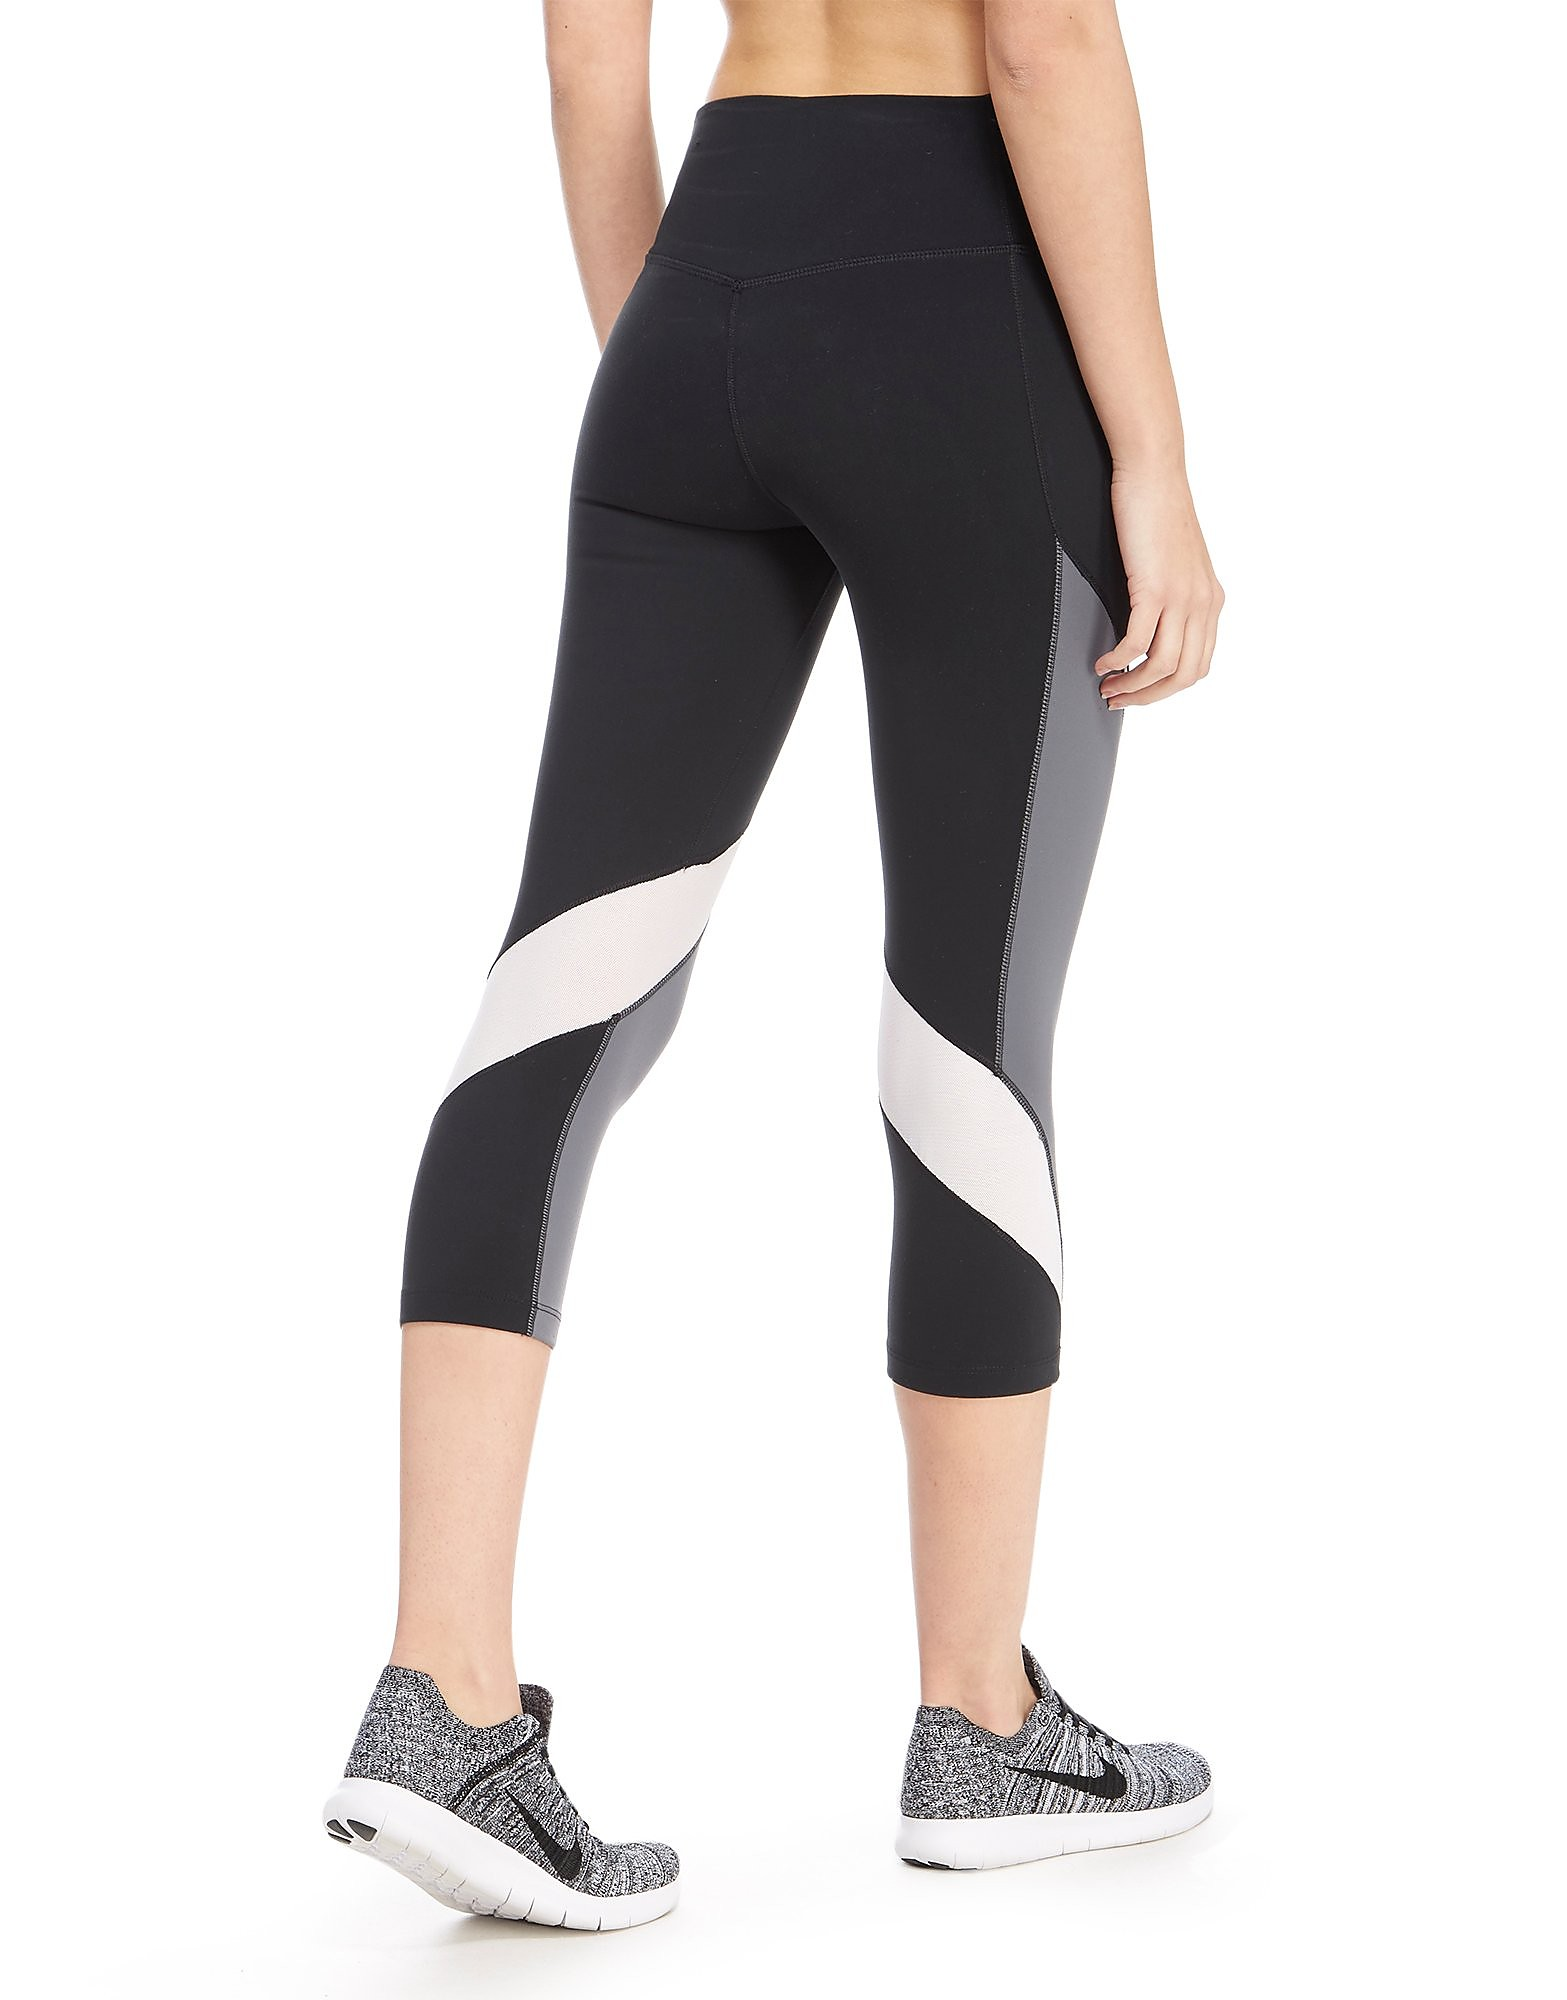 Nike Legendary Fabric Twist Capris